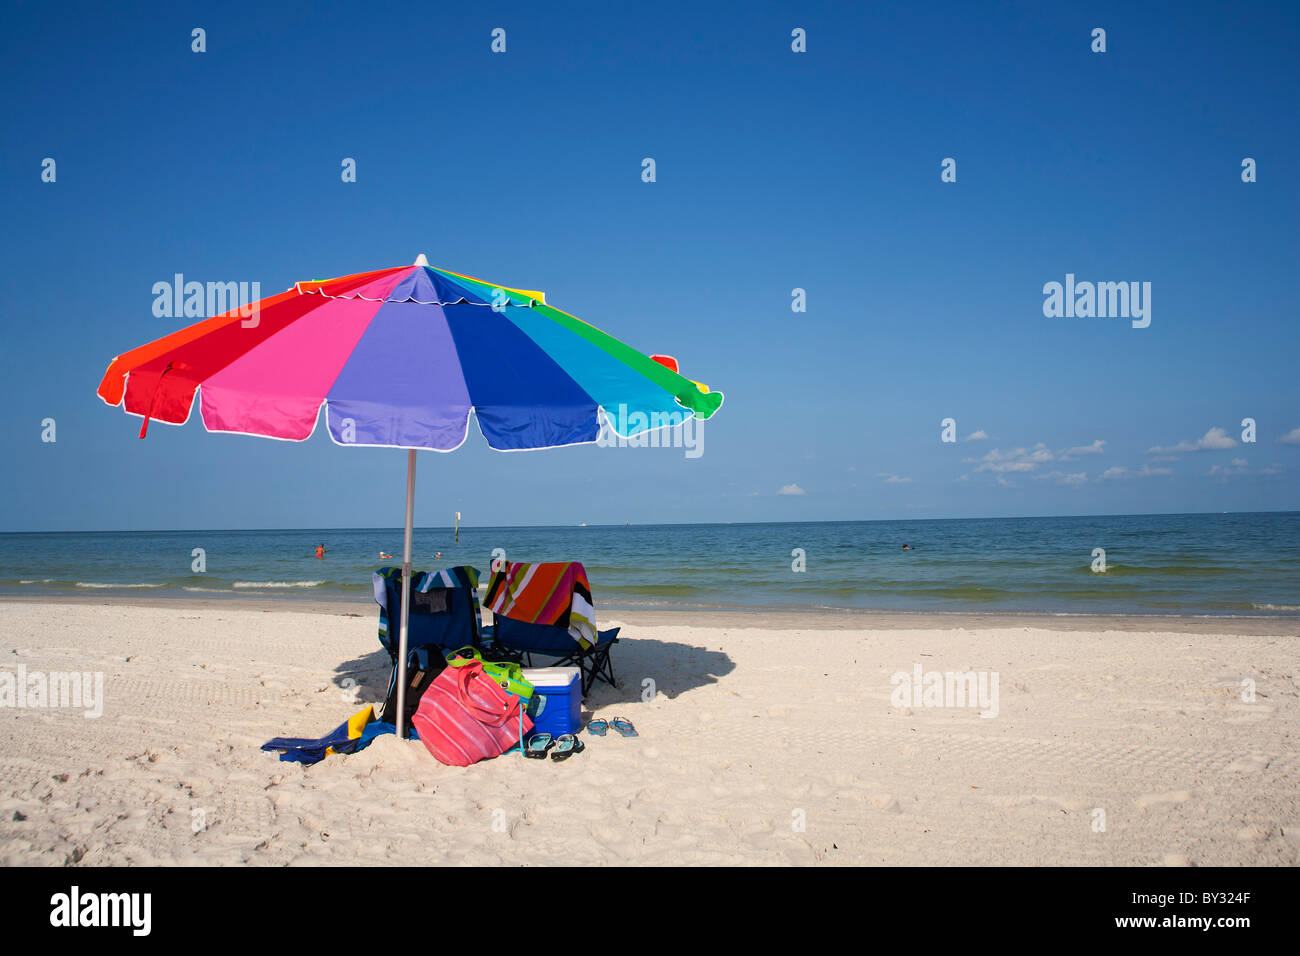 Beach Umbrella at Clearwater Beach, FL - Stock Image